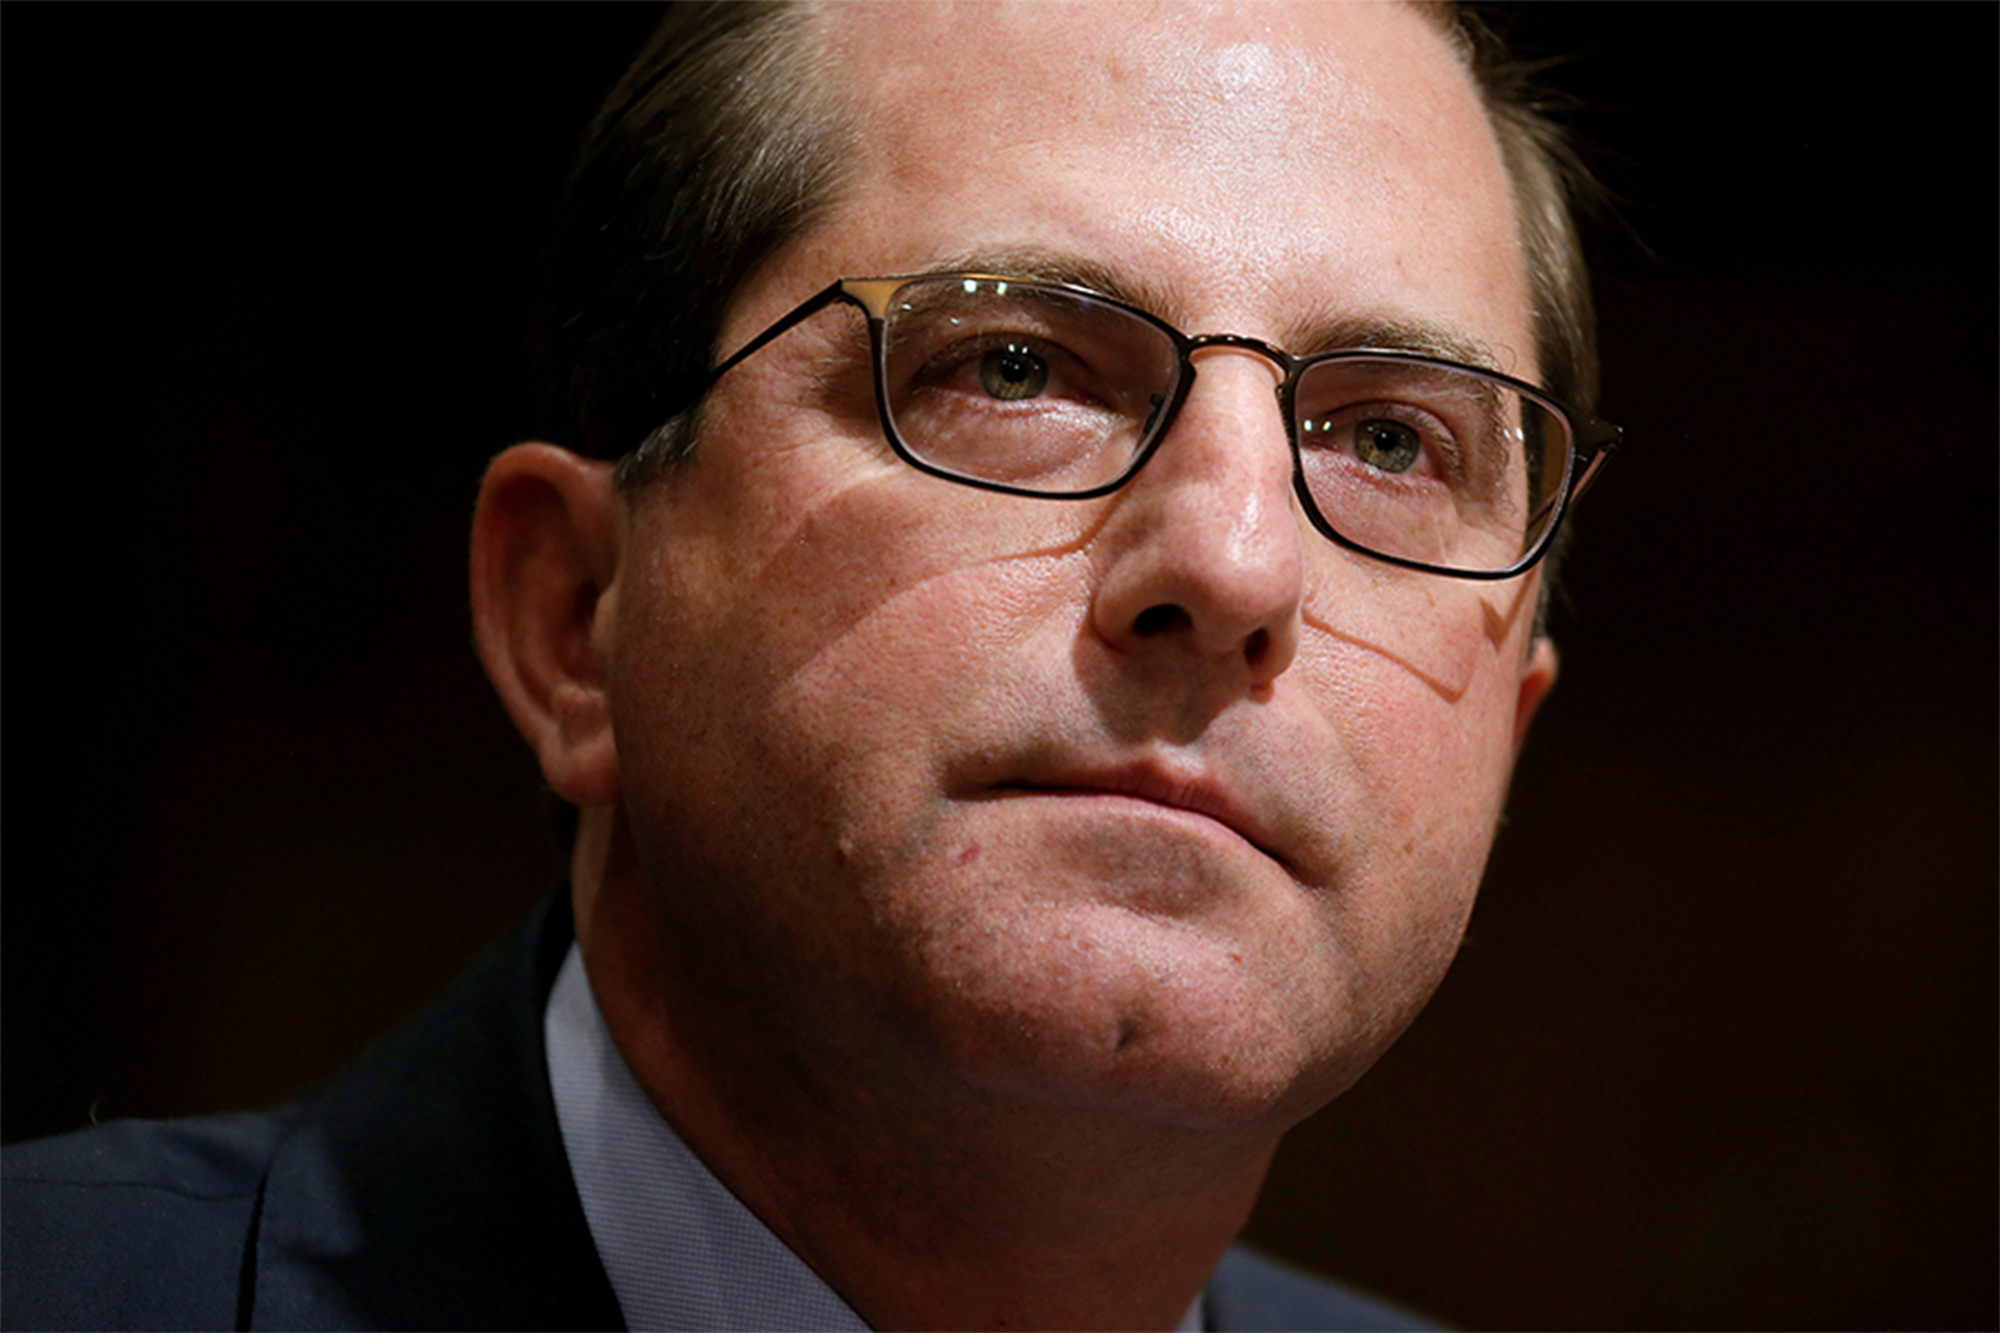 Alex Azar slams CNN for reporting resignation